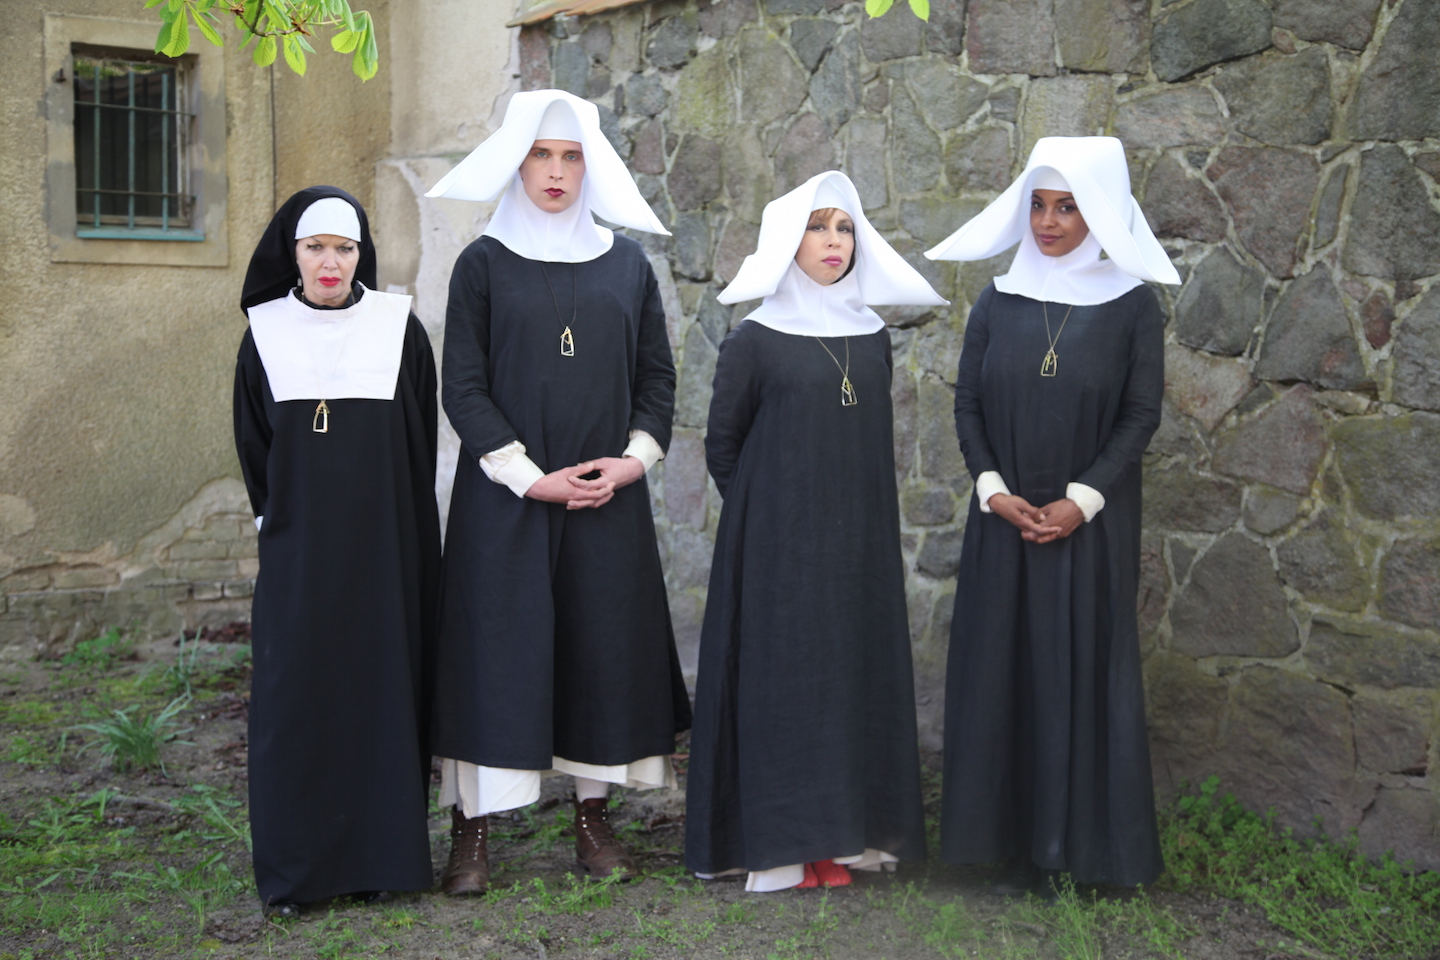 Radical lesbian separatists, disguised as nuns, run a revolutionary cell in  The Misandrists